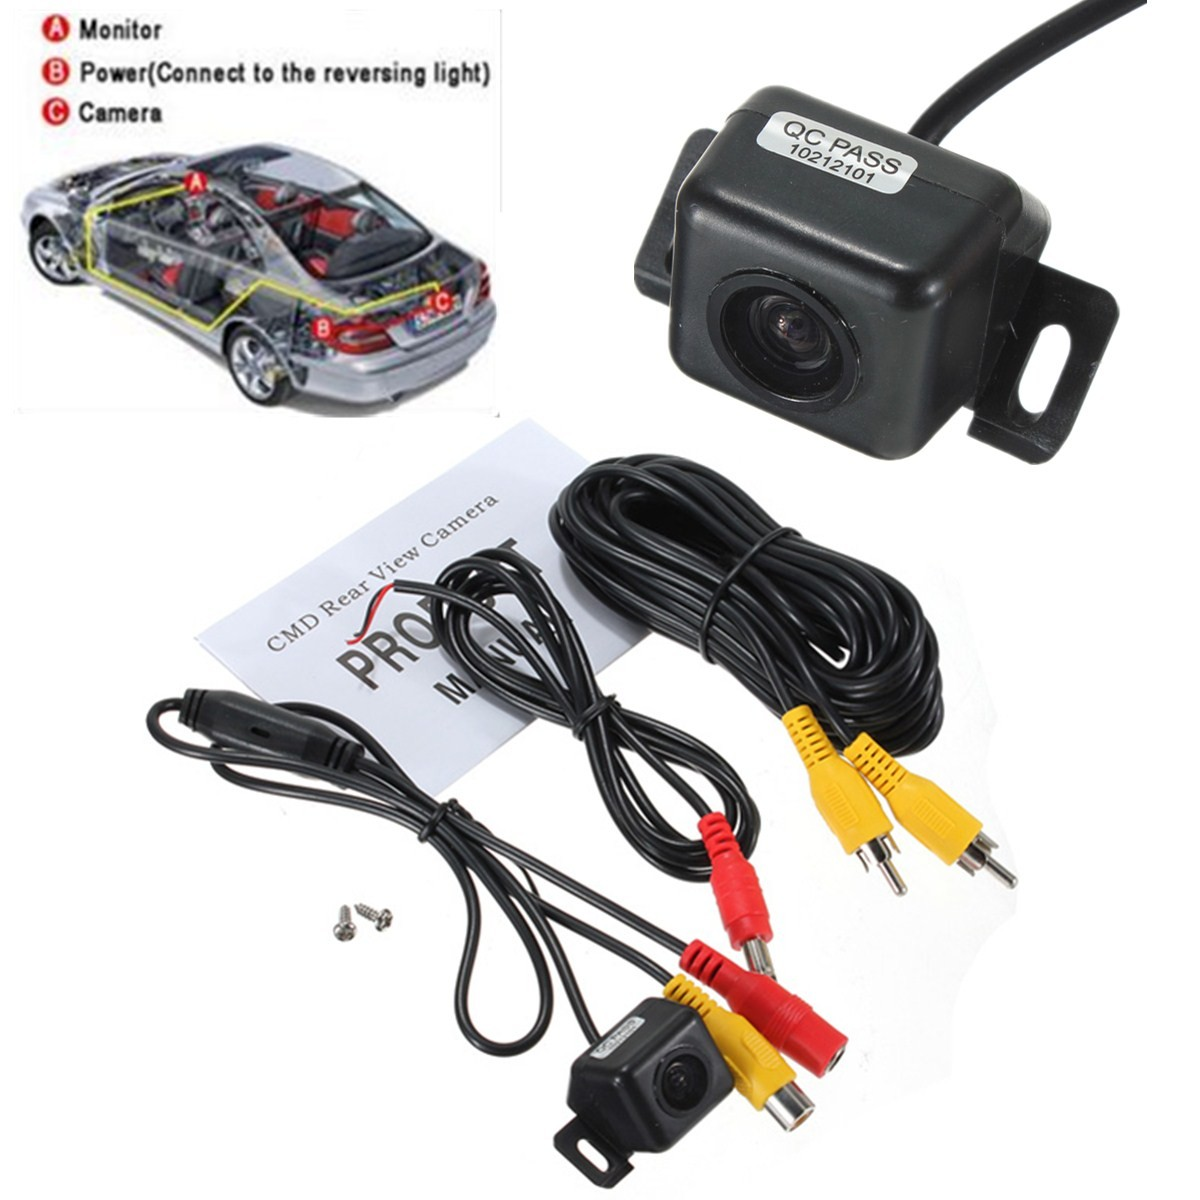 M.way 170°CMOS Night Vision Waterproof Car Rear View Reverse Backup Camera